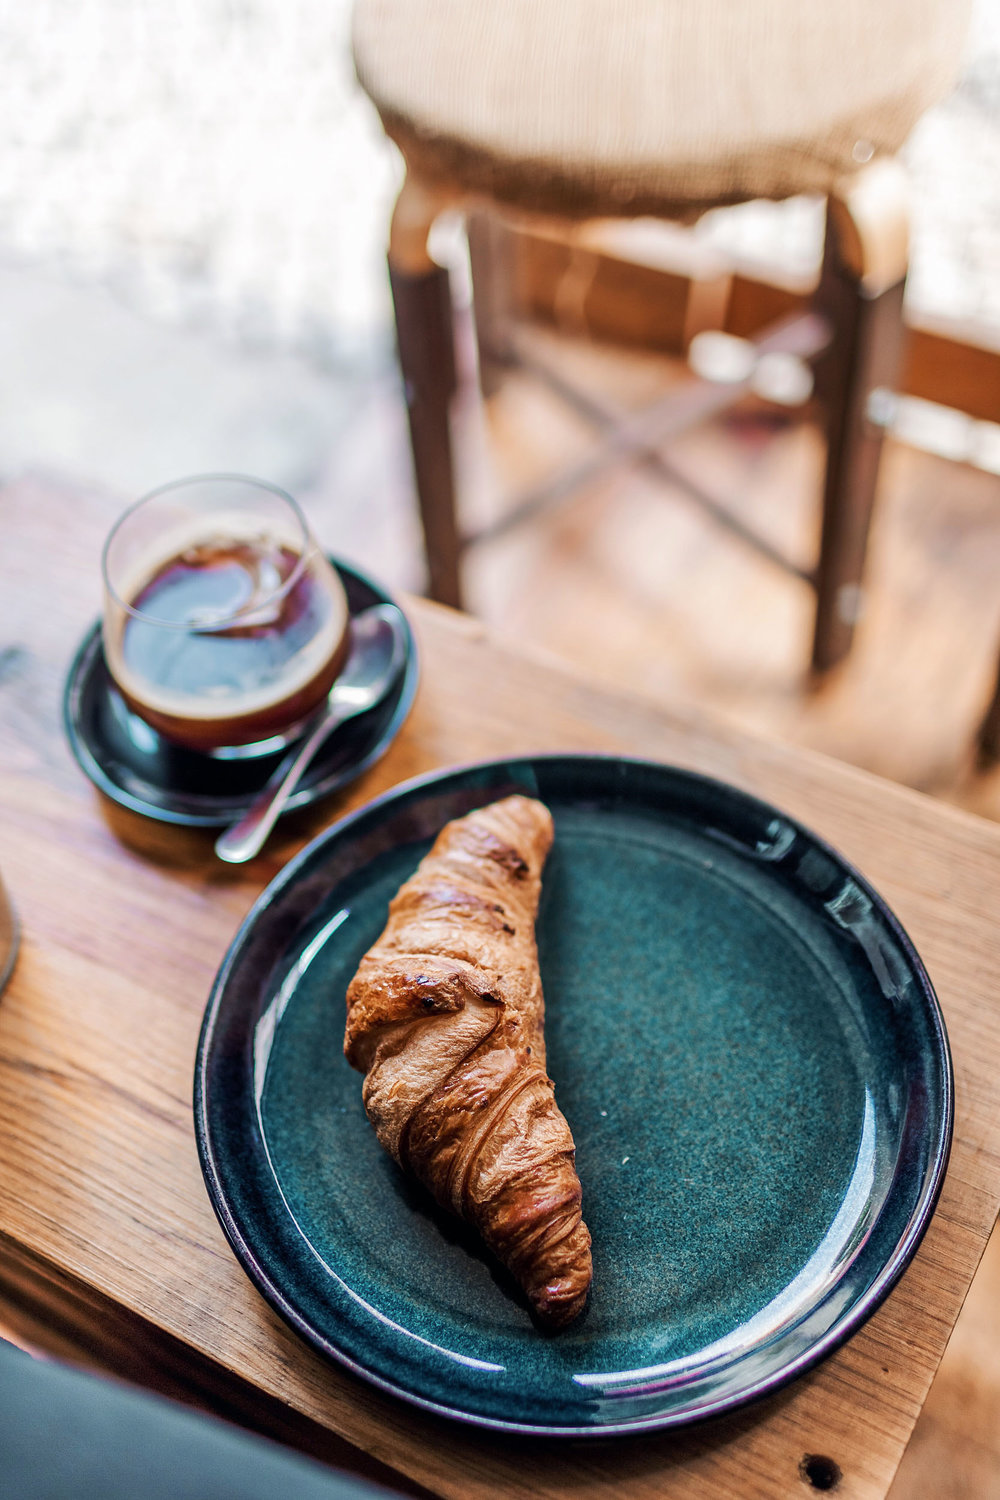 Fabrica Coffee Roasters in Lisbon offers coffee, beer, and light bites like sandwiches and pastries